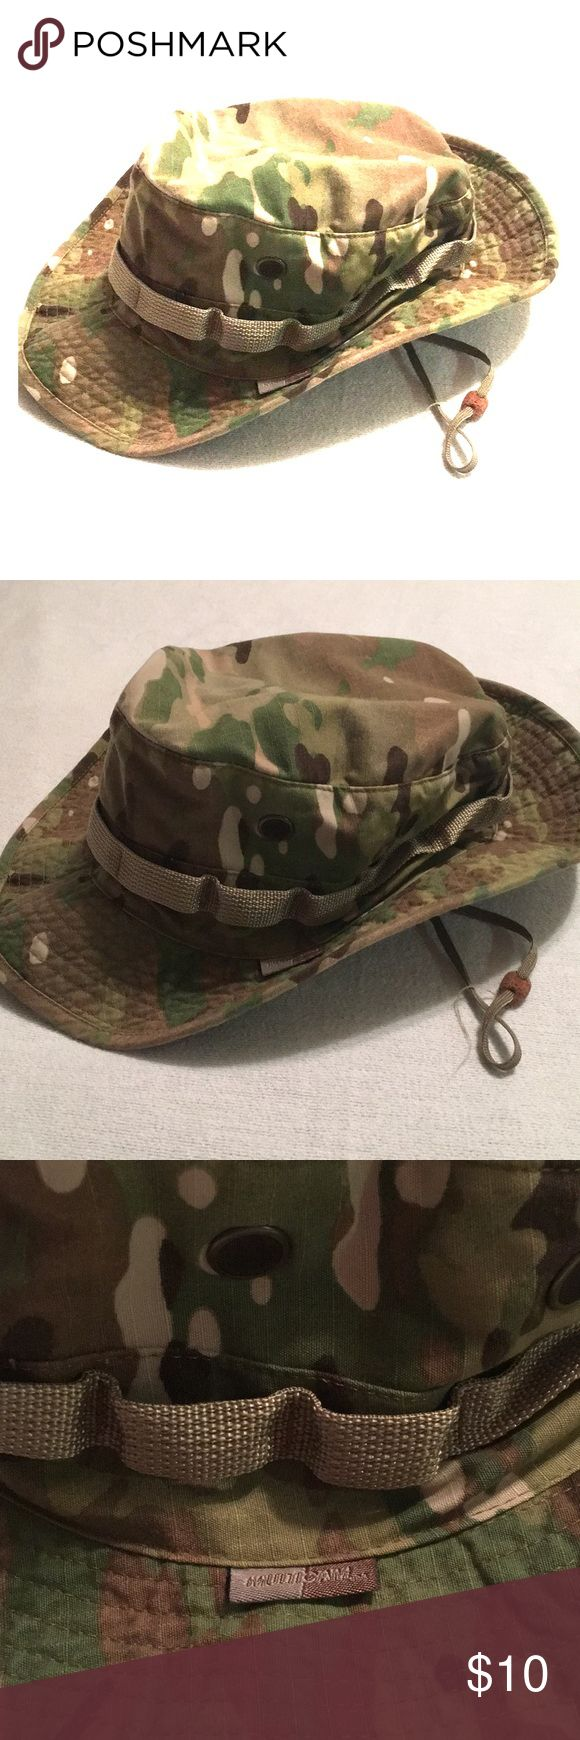 Multicam Military Camo Boonie Hat BRAND: Brigade QM SIZE: L (7 1/2) CONDITION: 10/10 DAMAGE/WEAR: None COLOR: Camo  Nice sun hat, boonie style. Great for the beach, lake, hunting or mowing. Lightweight and comfortable. Multicam camo pattern. No holes, odors or stains. Smoke & pet free. Brigade QM Accessories Hats